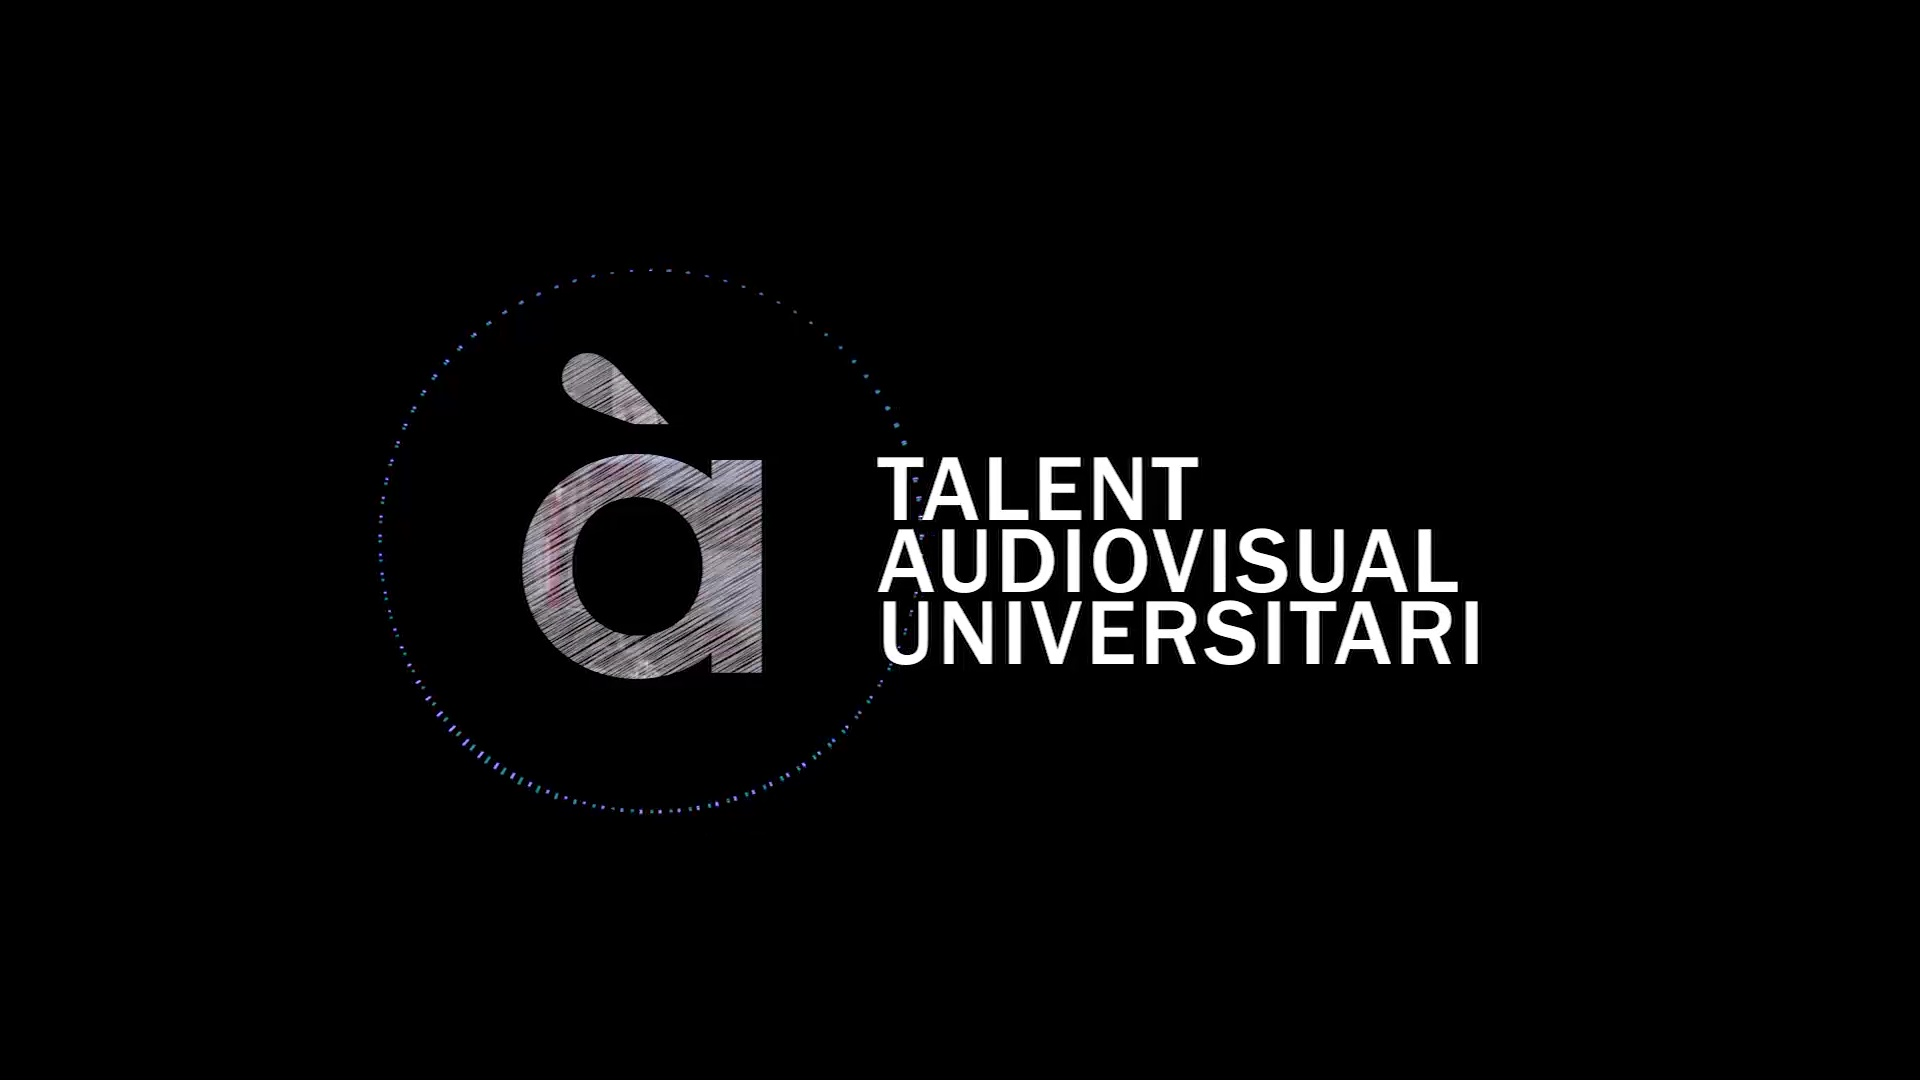 Talent Audiovisual Universitari - Conferència de Francesc Escribano